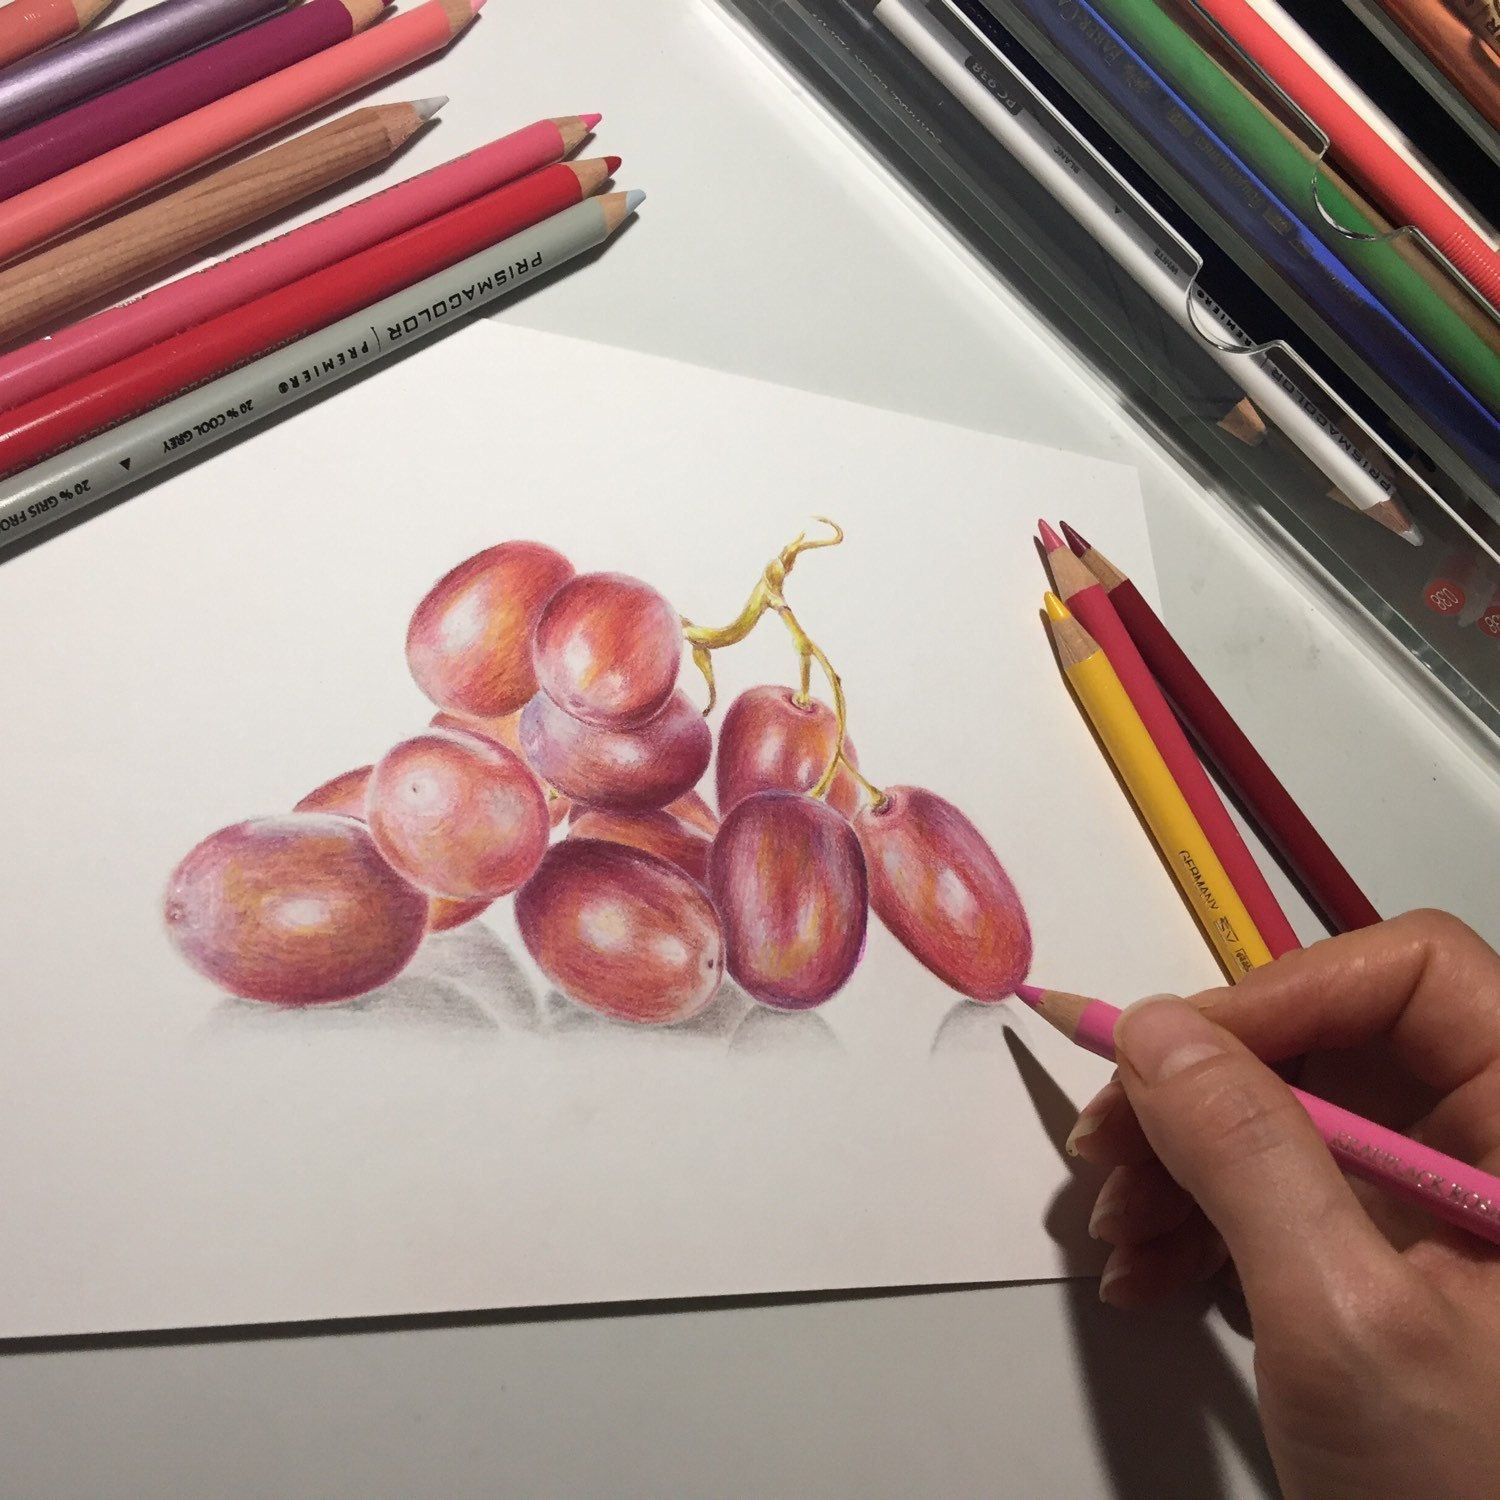 Suayaart Shared A New Photo On Etsy Grape Drawing Pencil Drawings Color Pencil Drawing